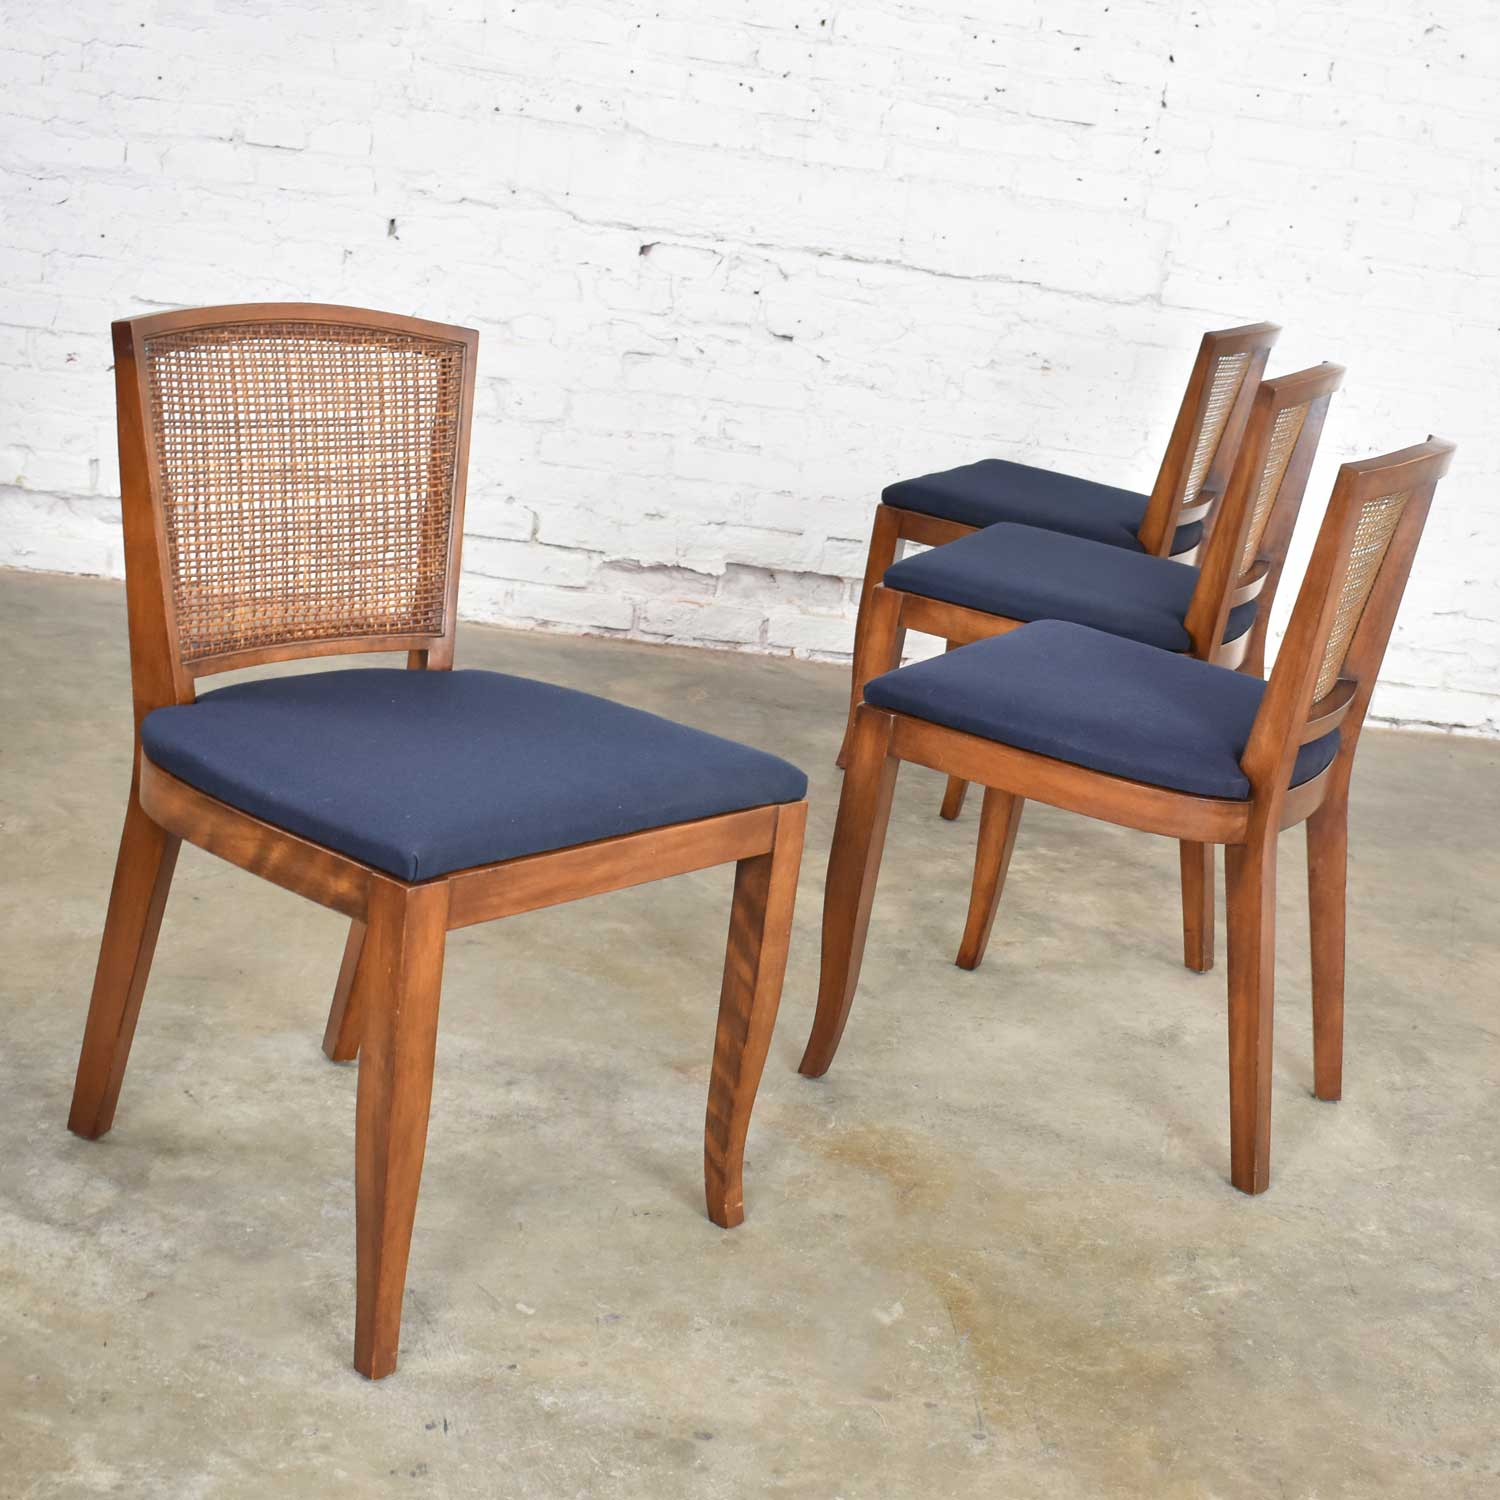 Vintage Mid Century Modern Set Of 4 Cane Back Dining Chairs Newly Upholstered Seats Warehouse 414